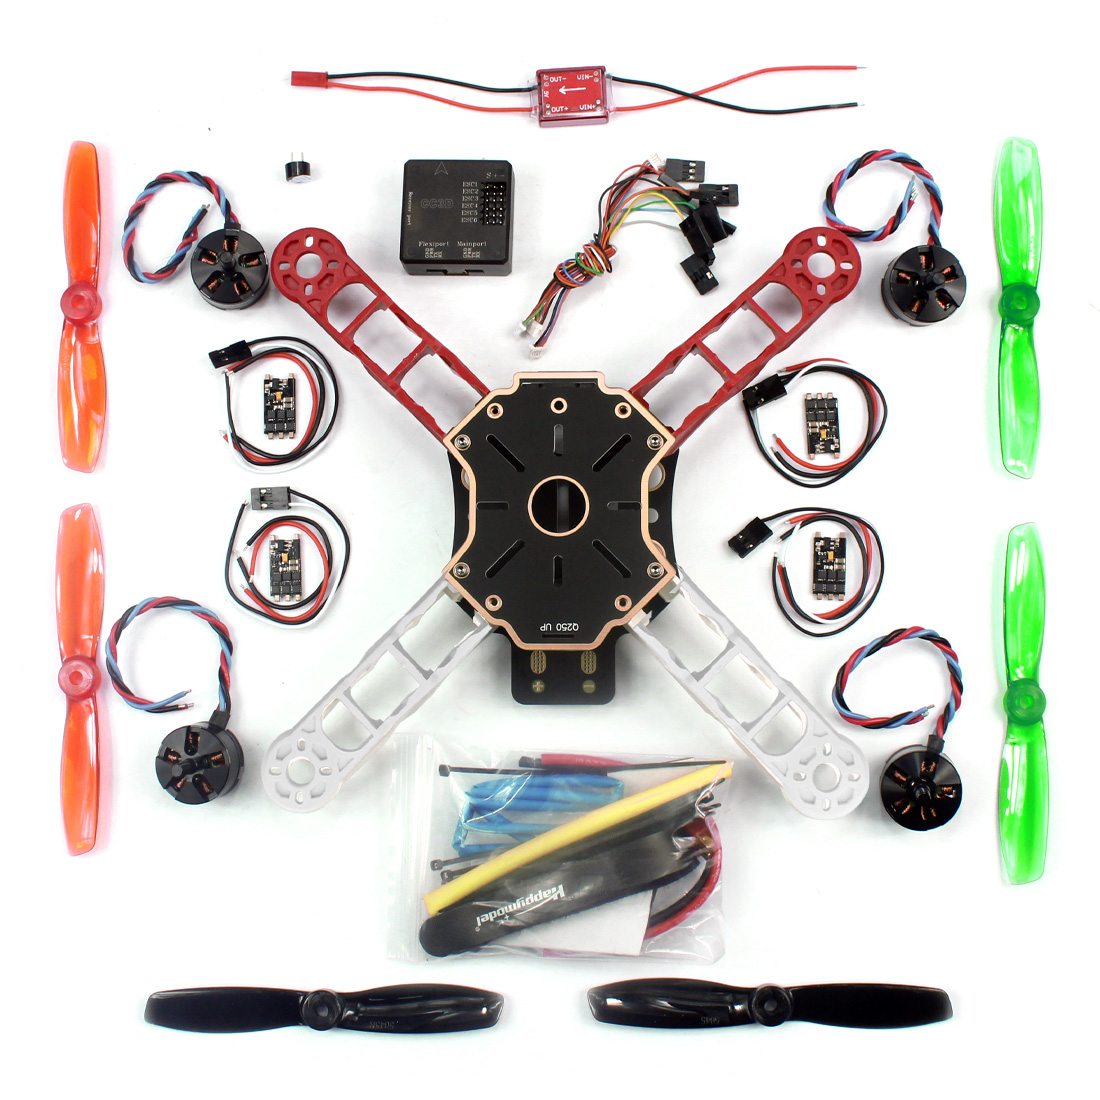 medium resolution of f11069 mini 250 rc quadcopter combo arf q250 frame cc3d flight controller emax simon 12a esc brushless motor mt2204 cw ccw fs in parts accessories from